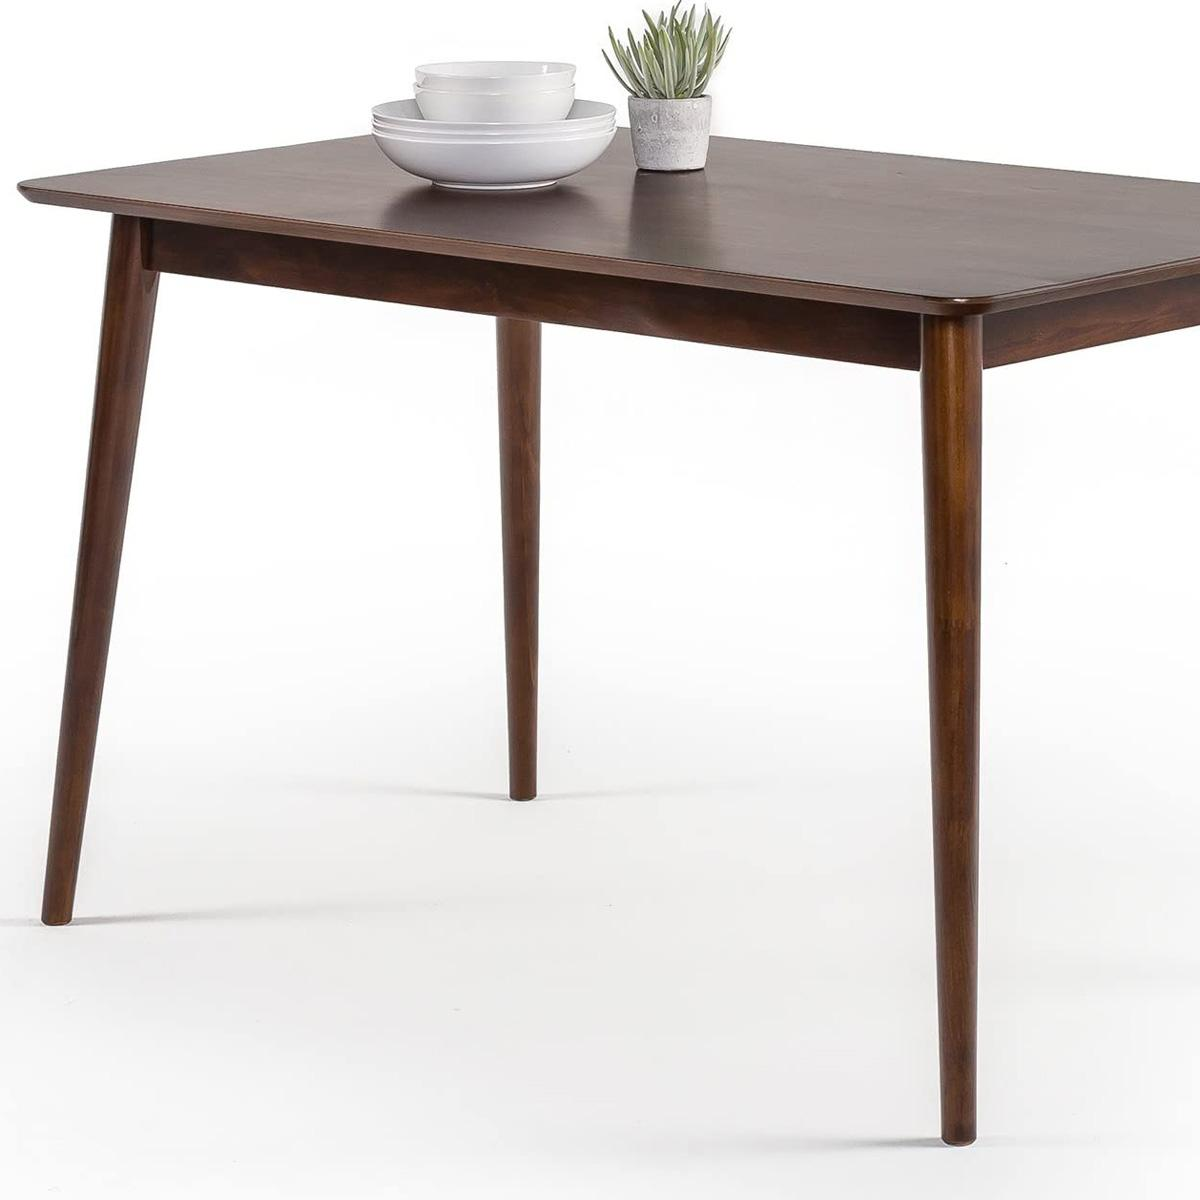 Zinus 47in Jen Solid Wood Dining Table for $103.70 Shipped